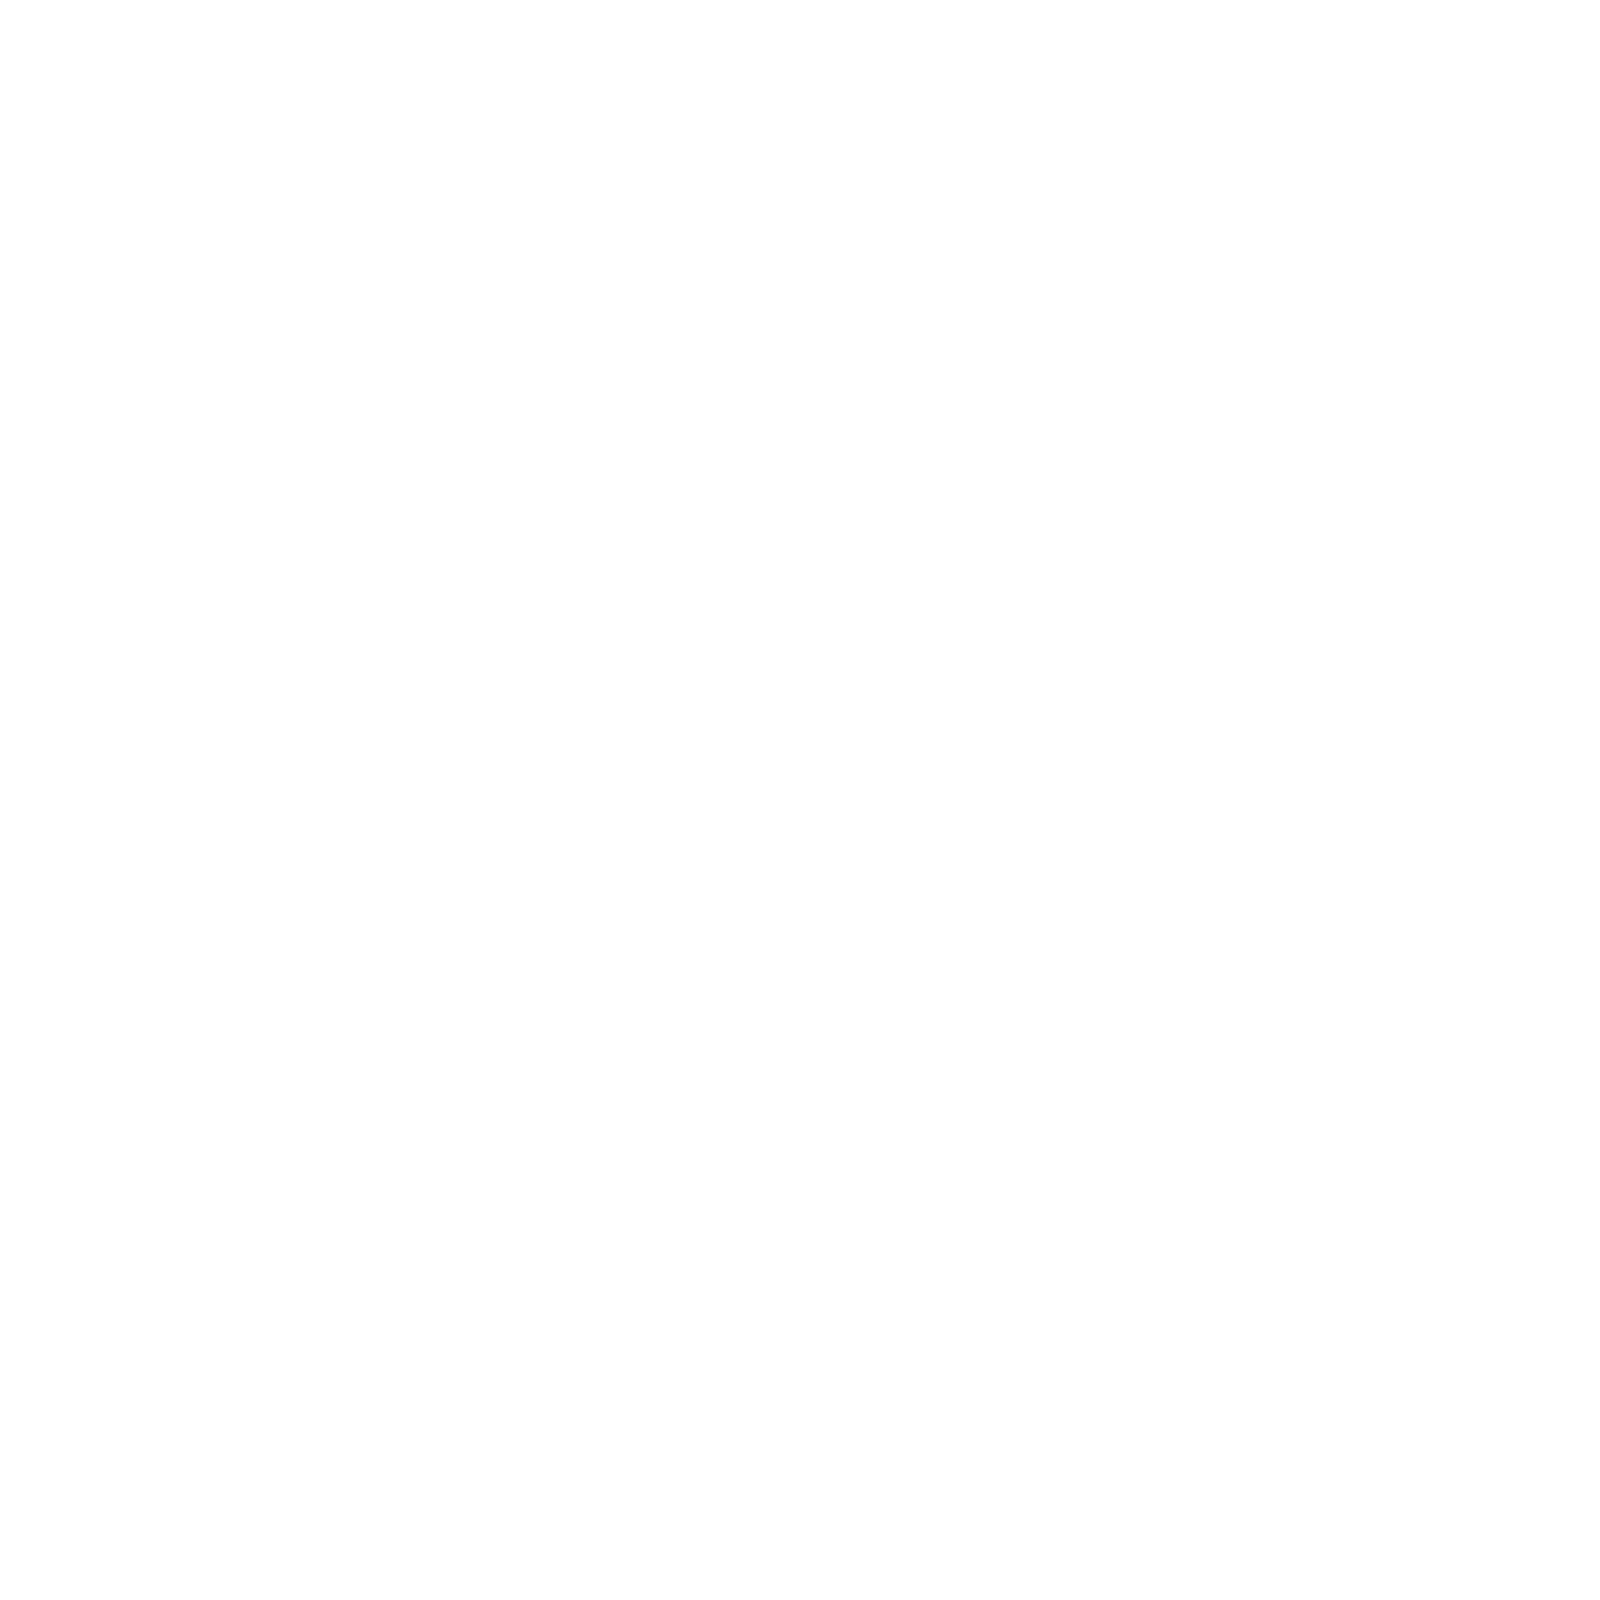 clearplay-project-logo